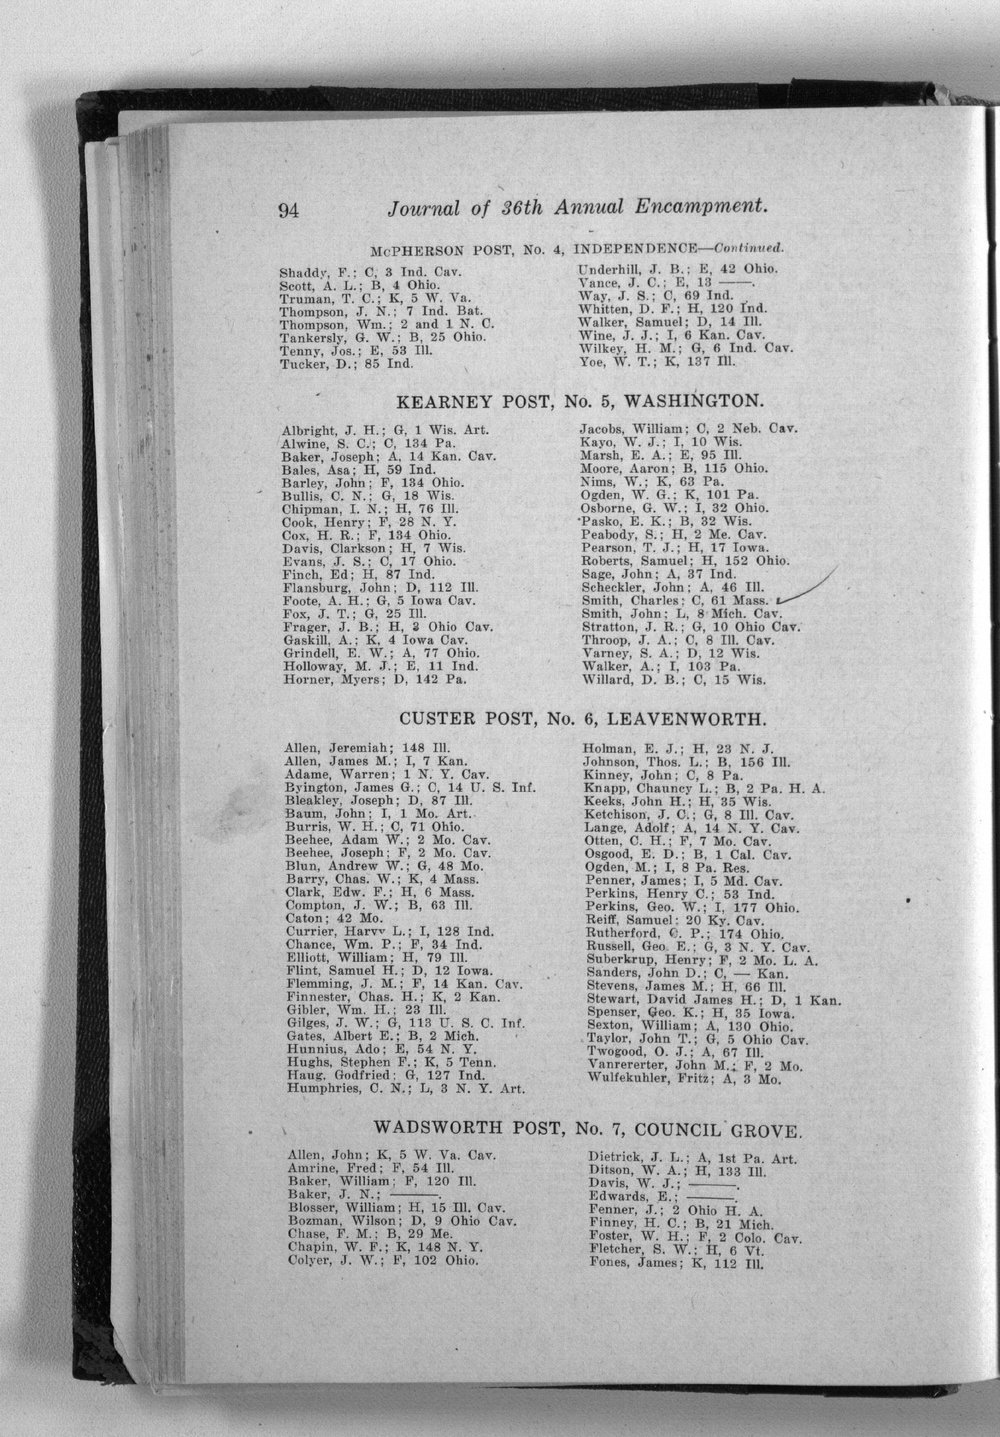 State roster of the Kansas Grand Army of the Republic - 94